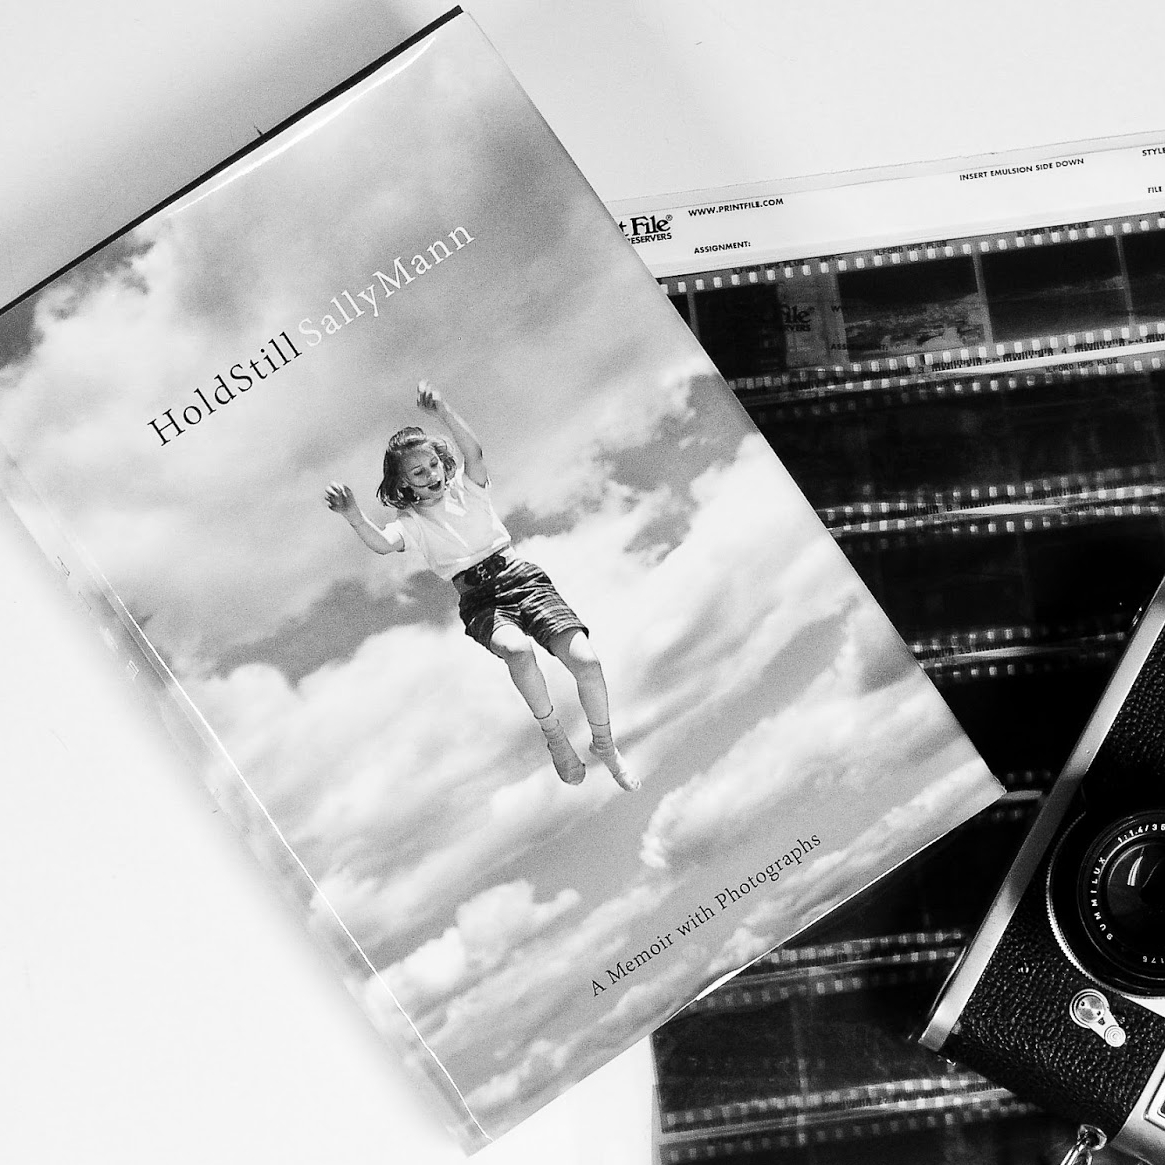 Hold Still,Sally Mann - A memoir by one of my favorite artists. She explores her family and personal history in connection to her own artistic practice.